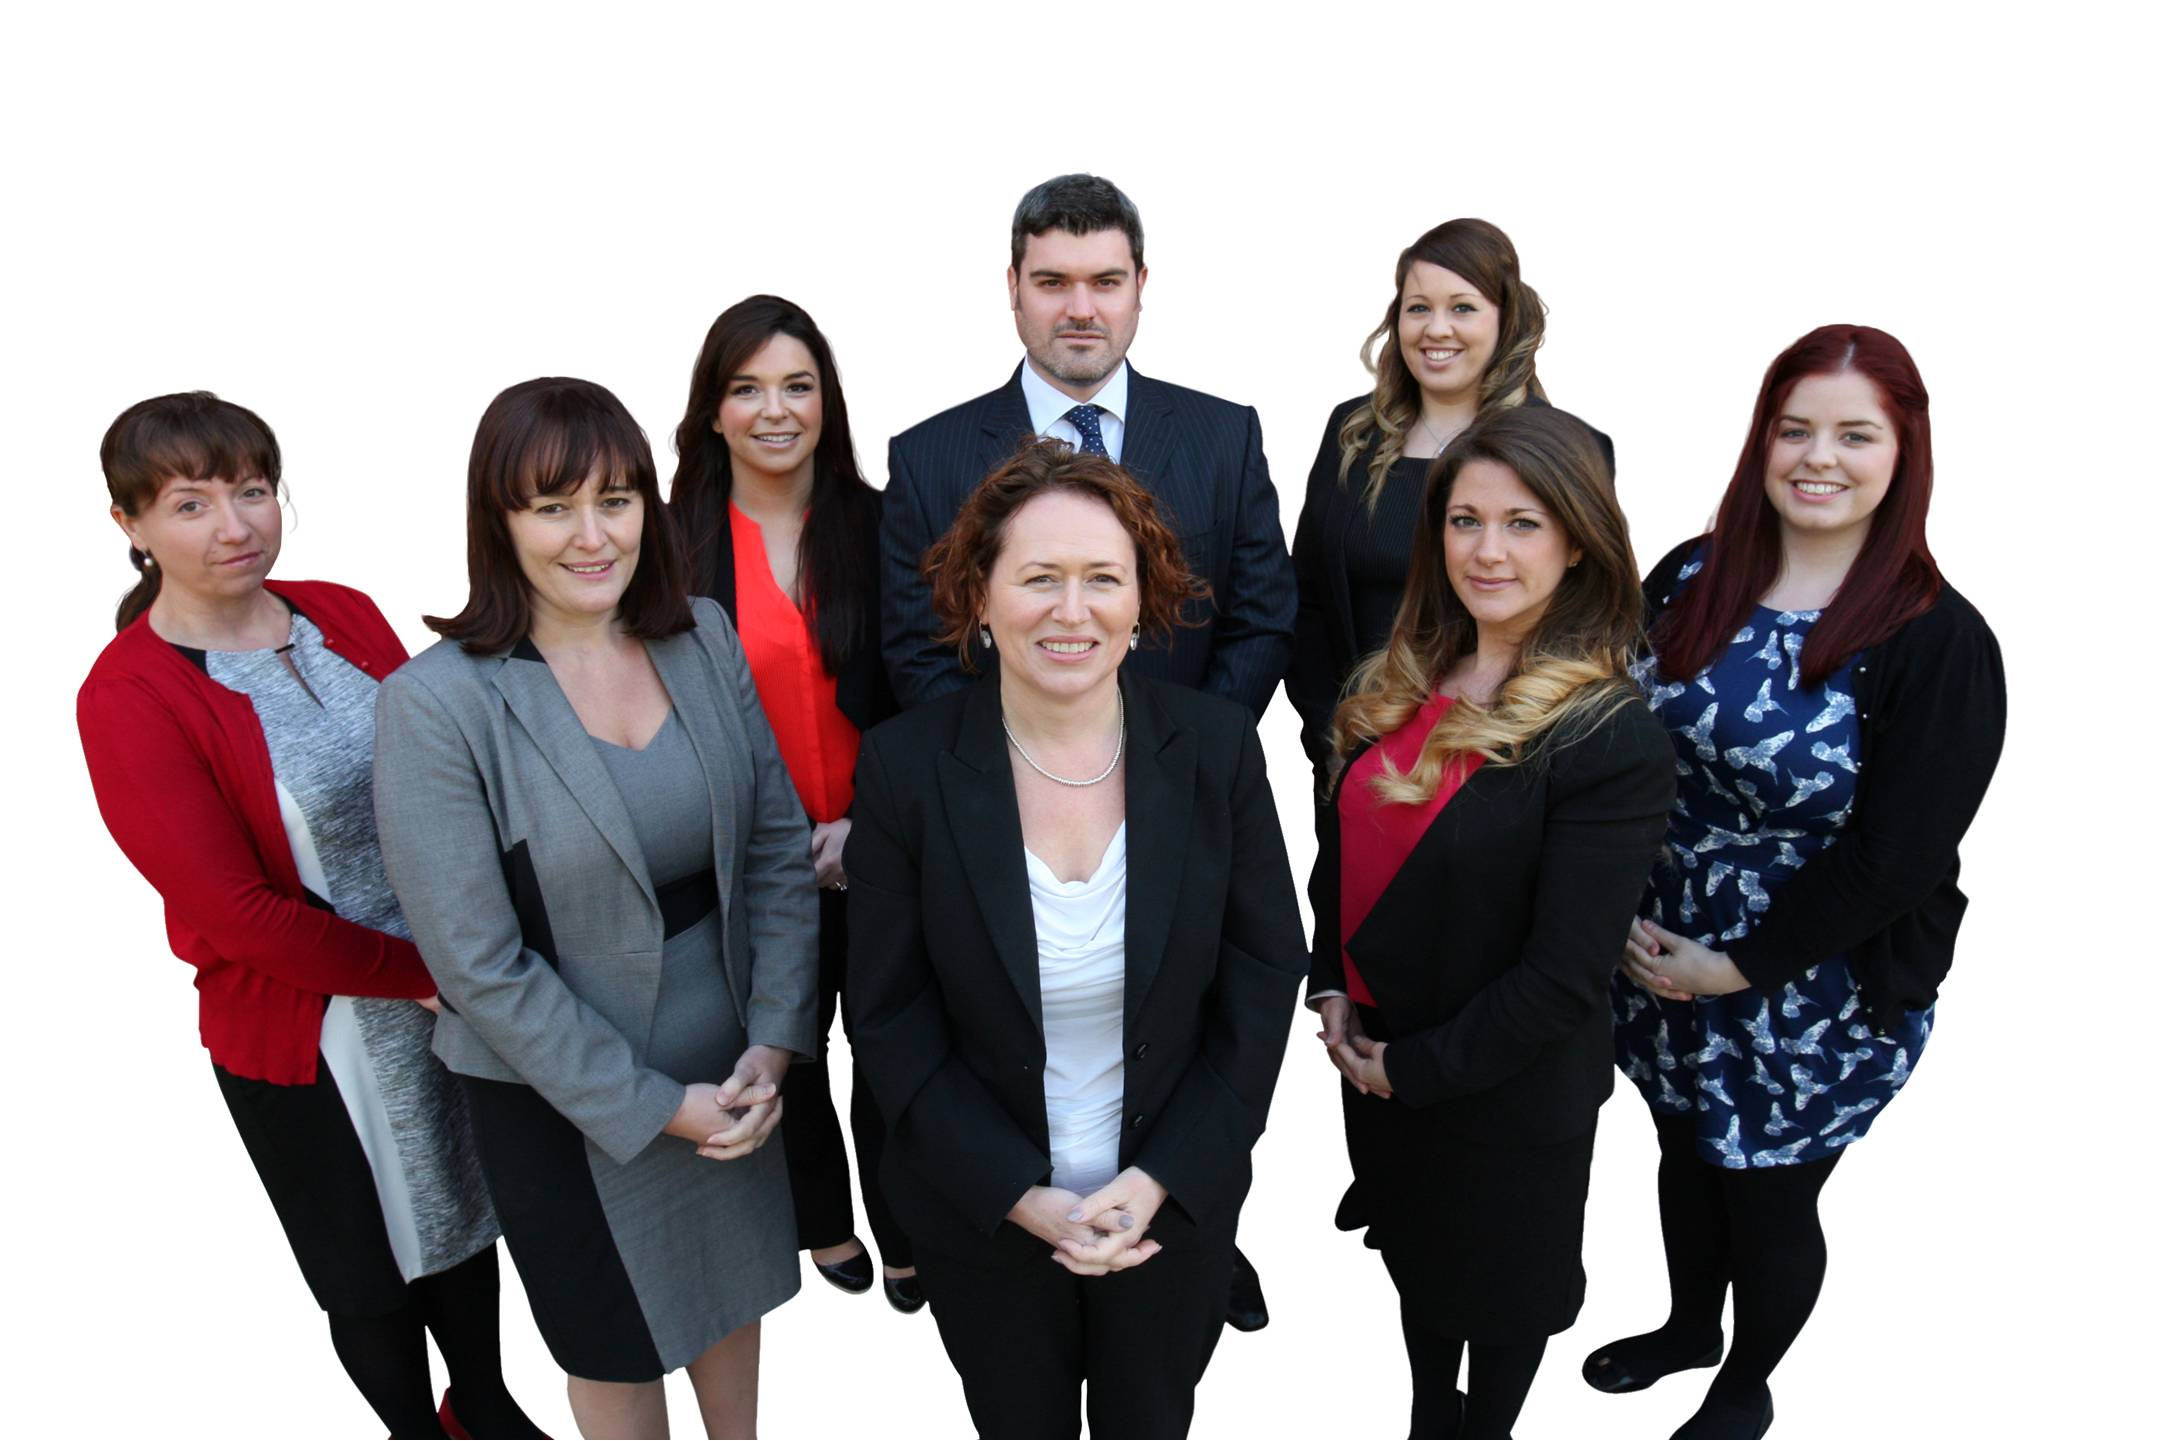 Our Hernia Surgery expert team. We deal with medical negligence claims arising from Hernia Surgery.